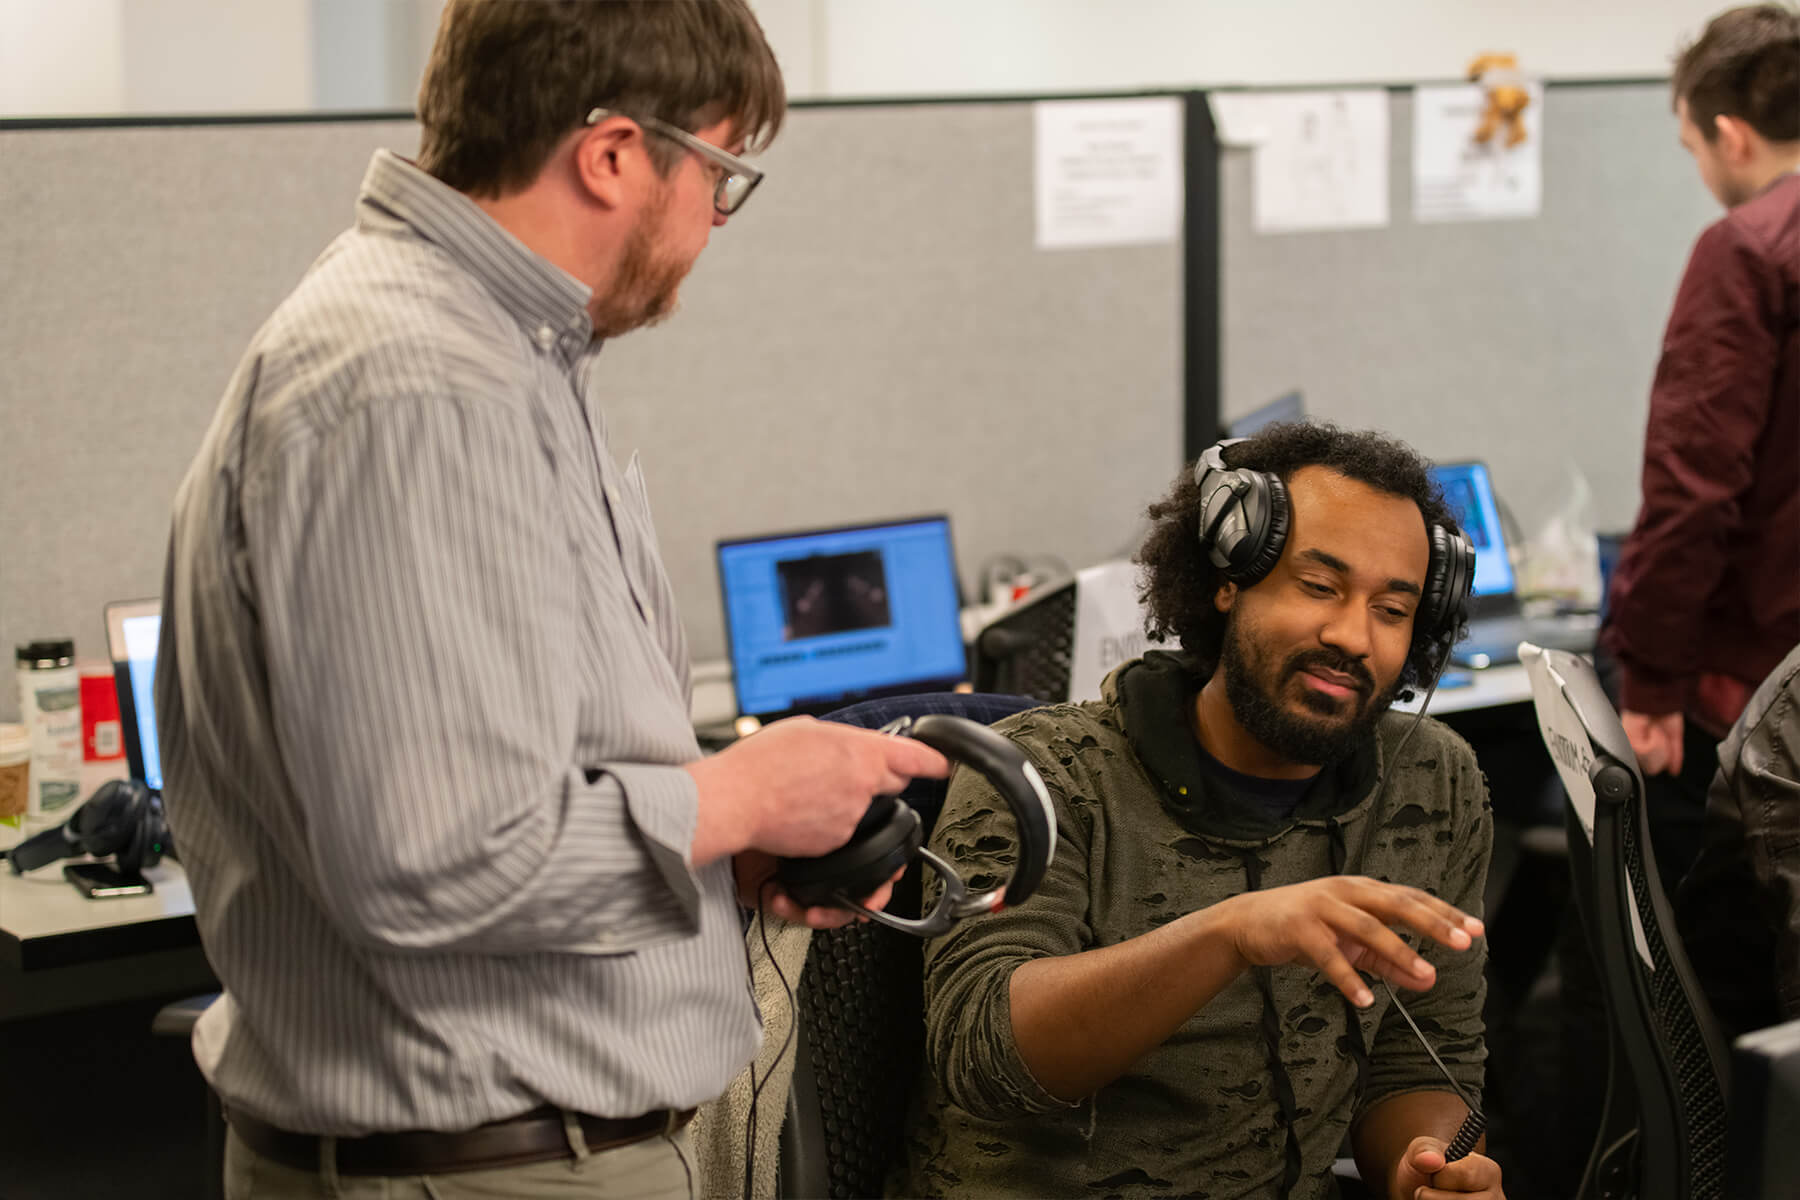 A professor takes his headphones off to chat with a student, also wearing headphones, about their work.